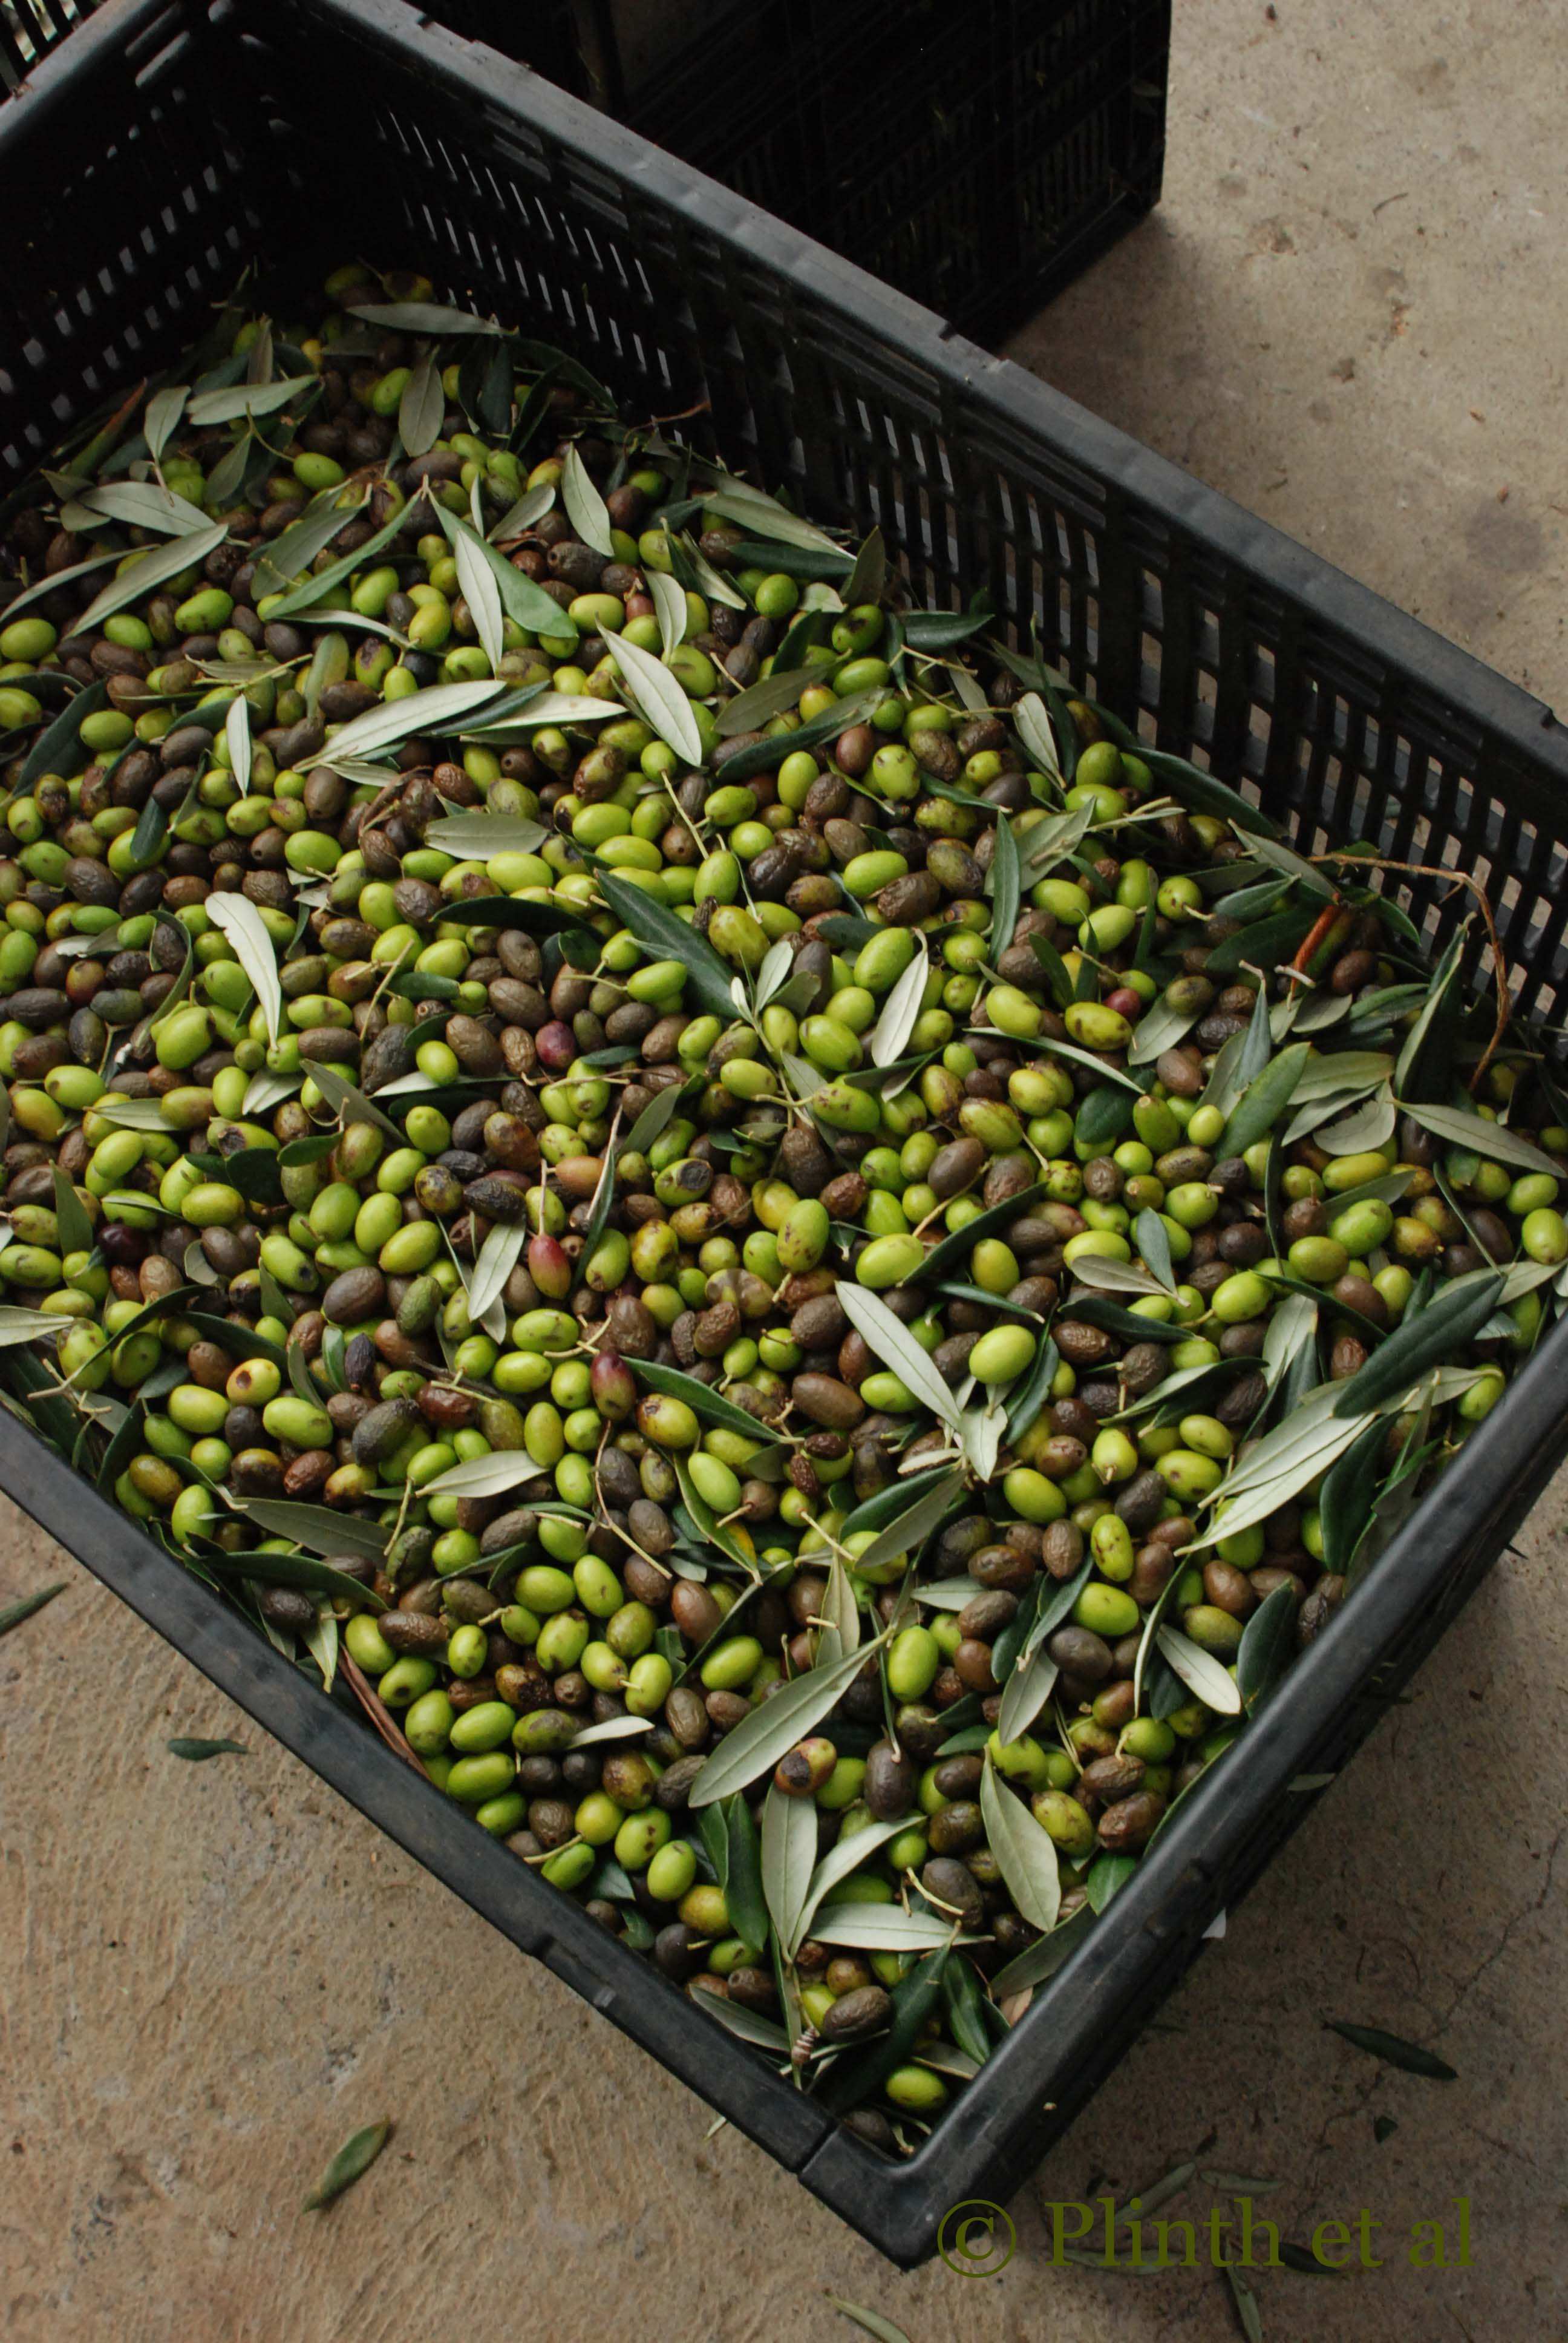 Olive Harvest and Oil in Tasmania – Plinth et al.